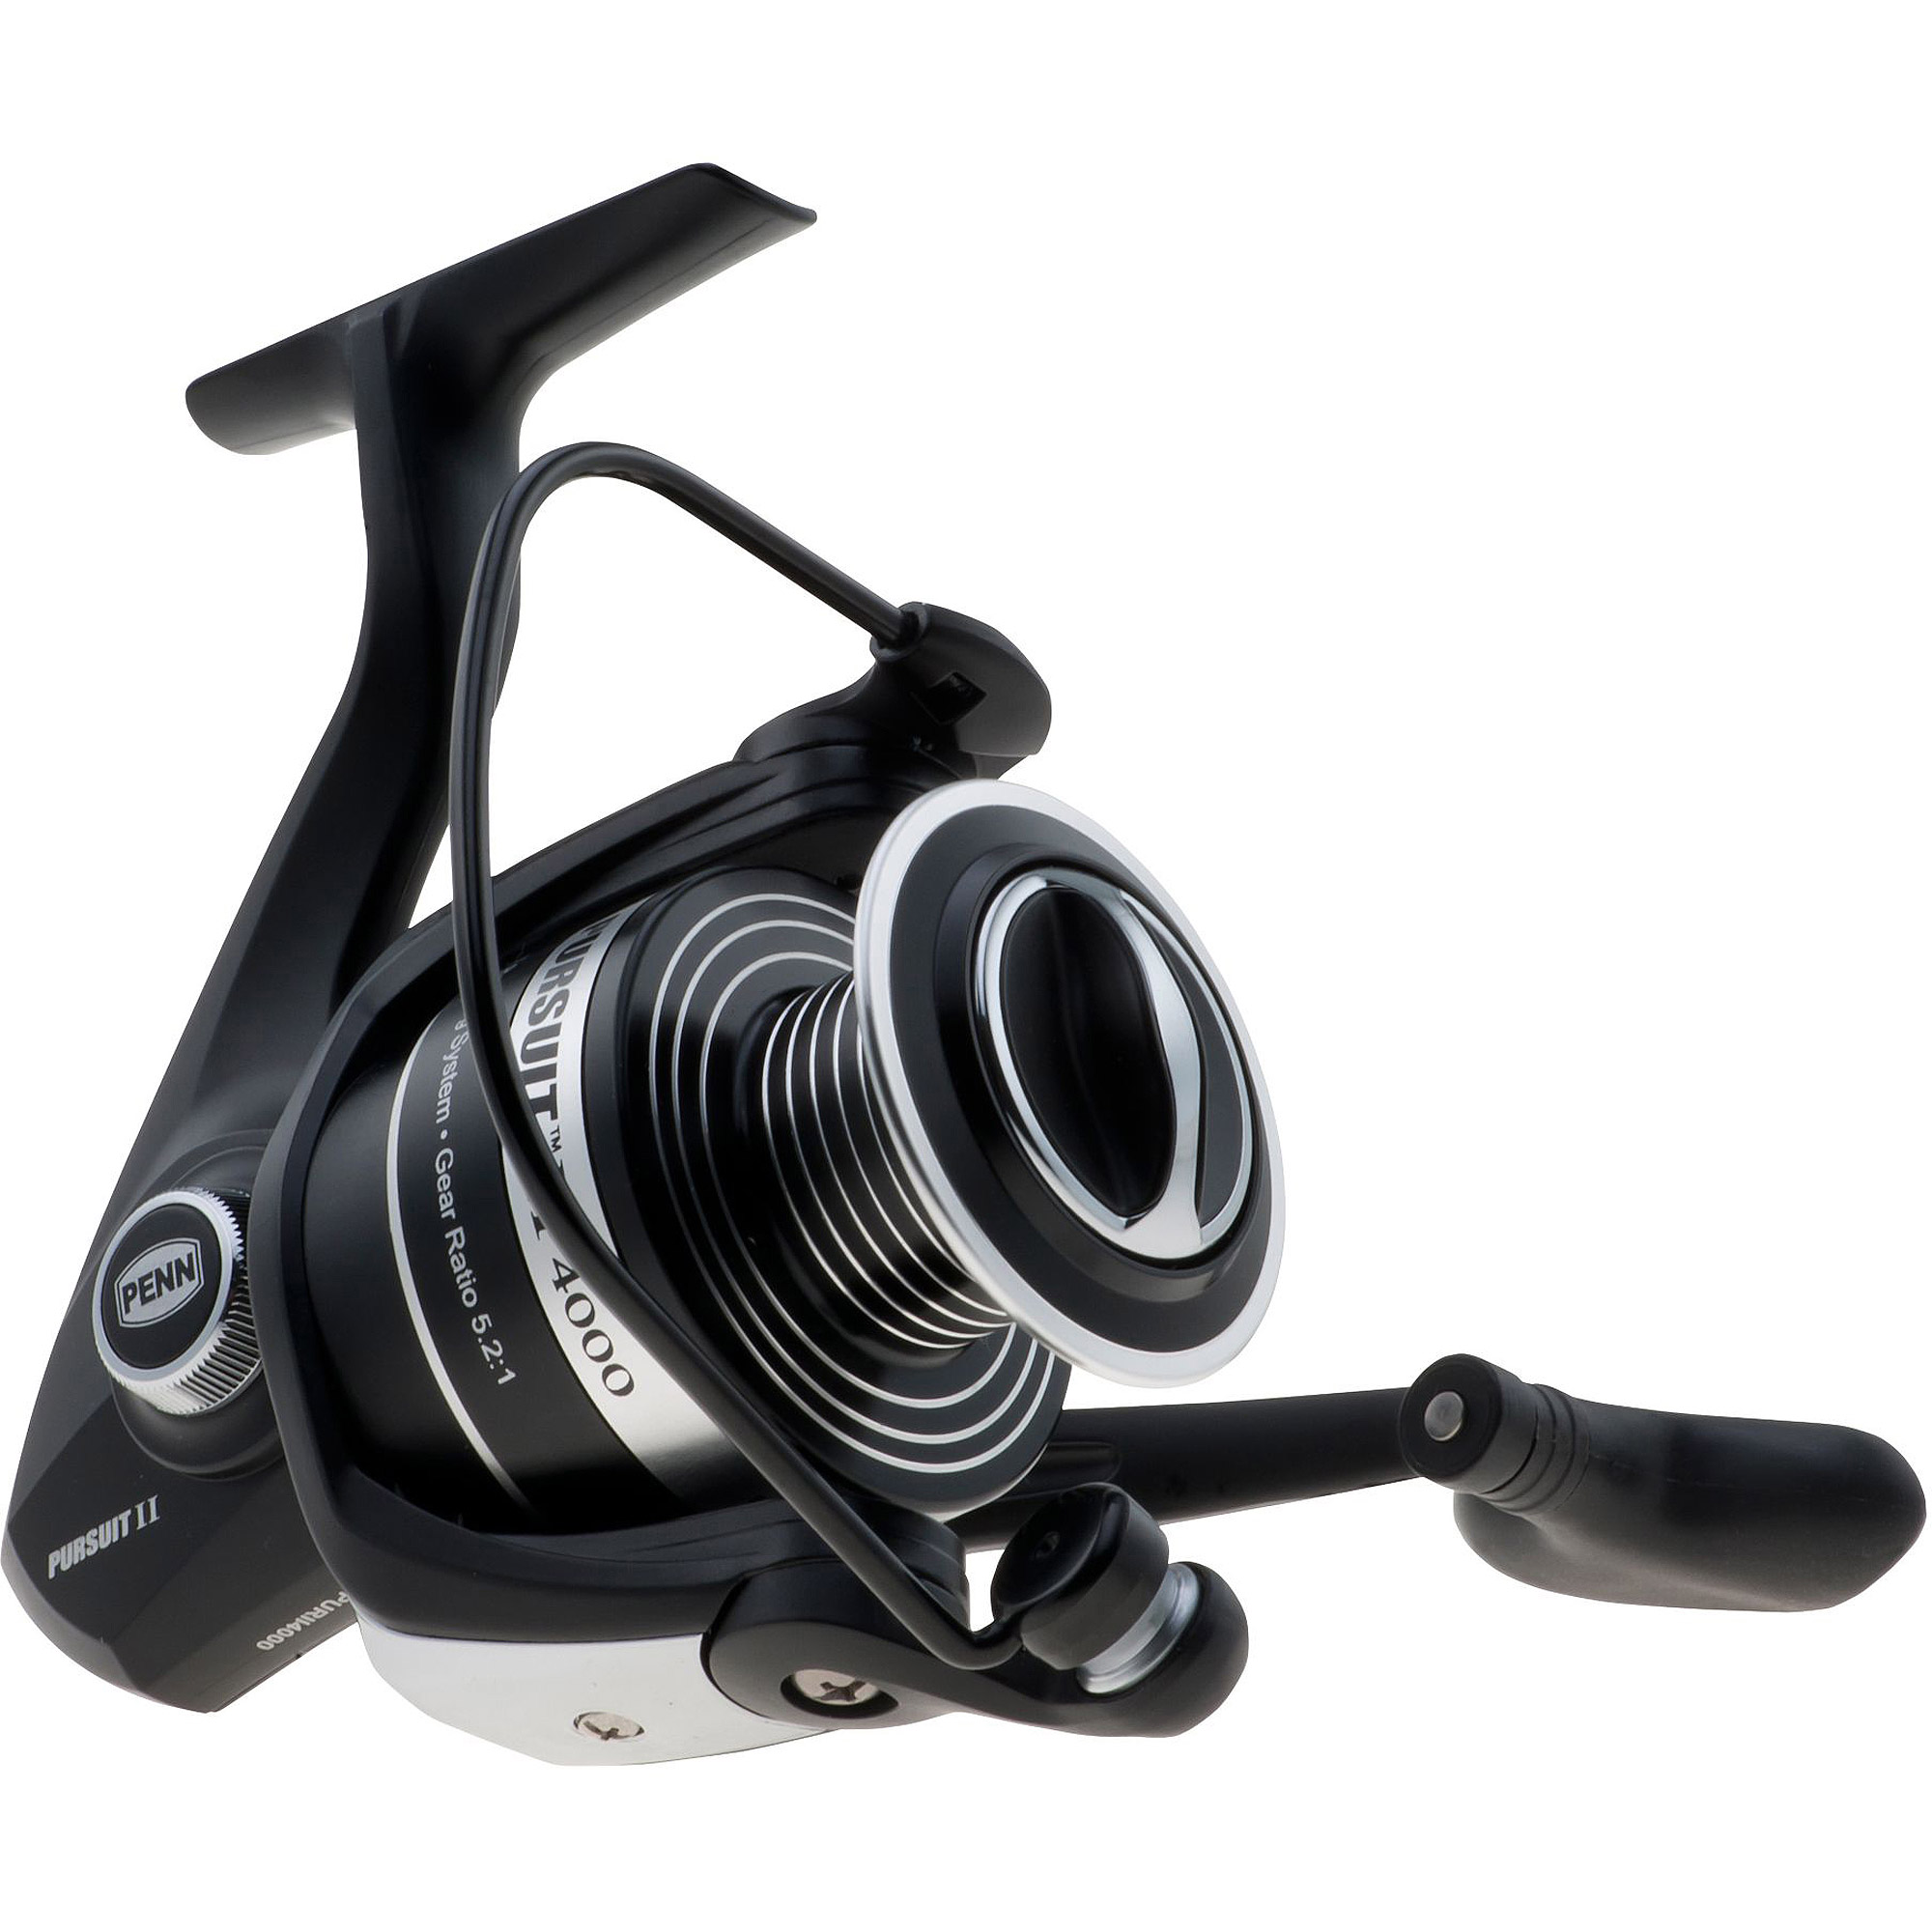 Abu garcia fishing reels for Walmart fishing reels